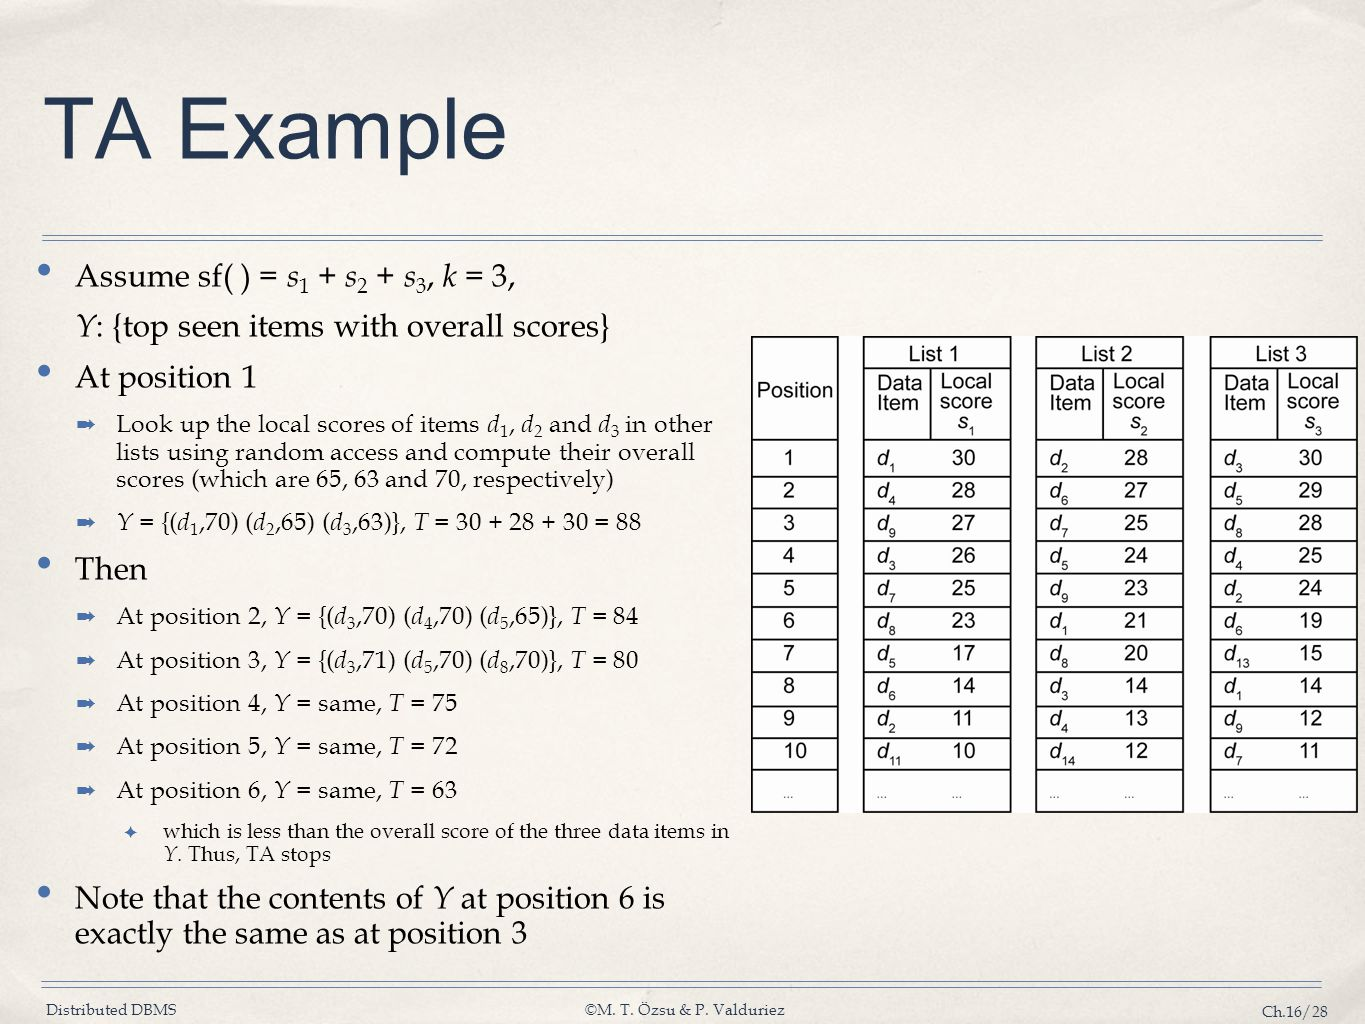 TA Example Assume sf( ) = s1 + s2 + s3, k = 3,